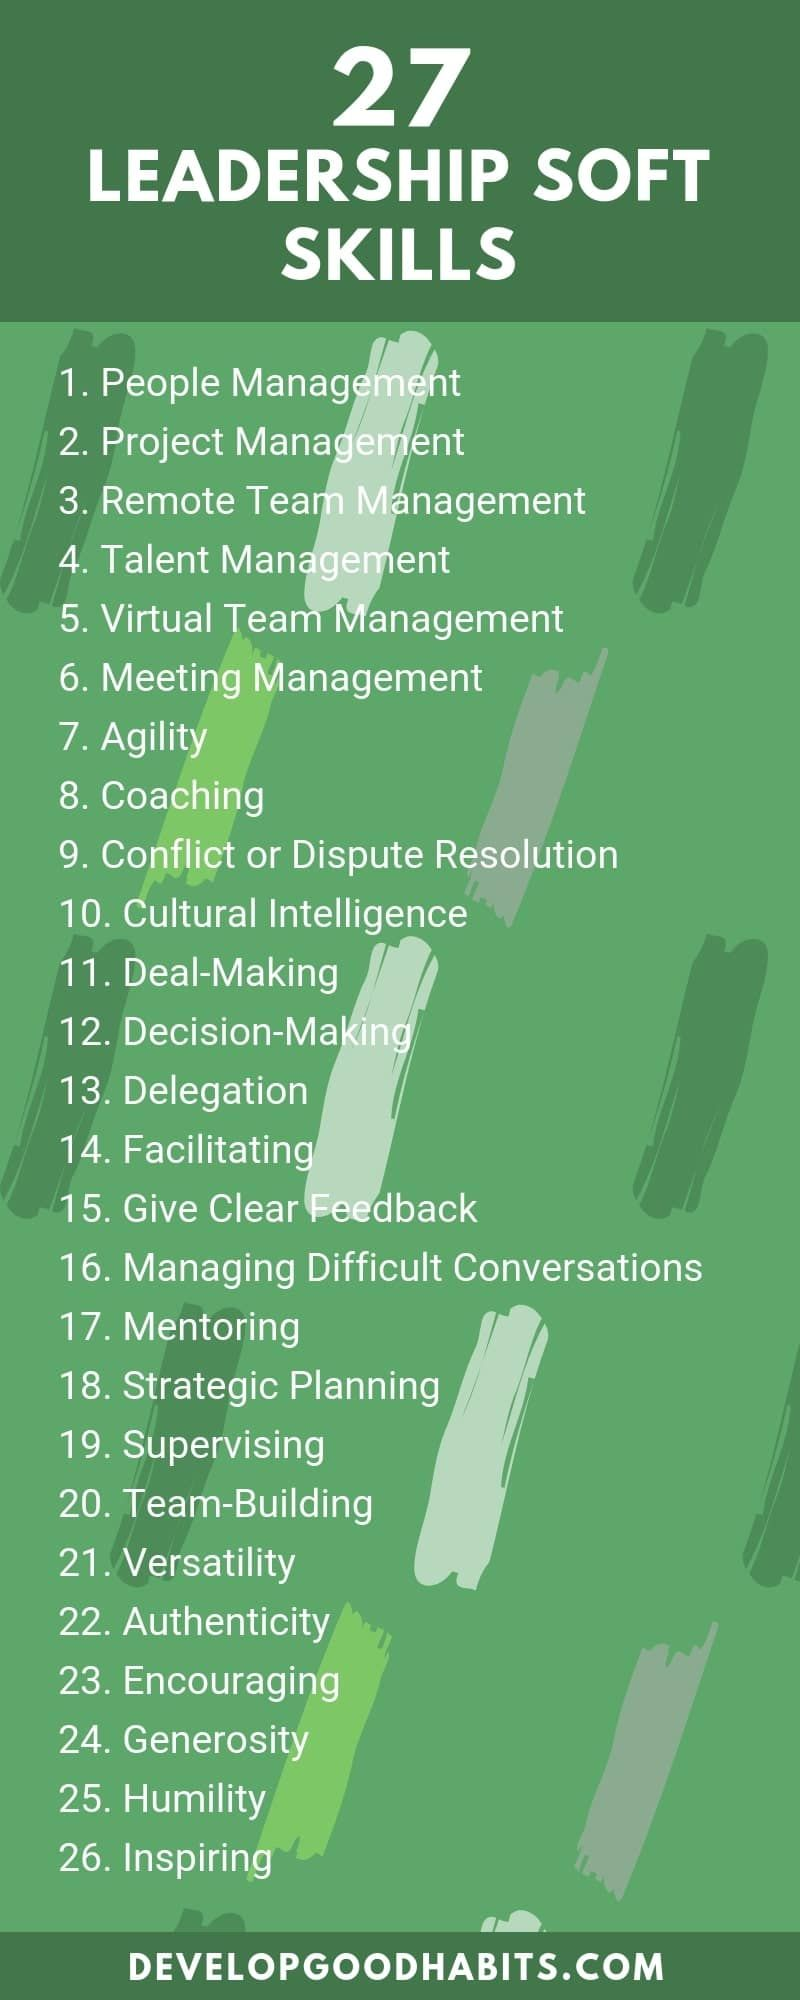 135 Soft Skills List To Stand Out On A Resume Or Job Application List Of Skills Developing Leadership Skills Soft Skills